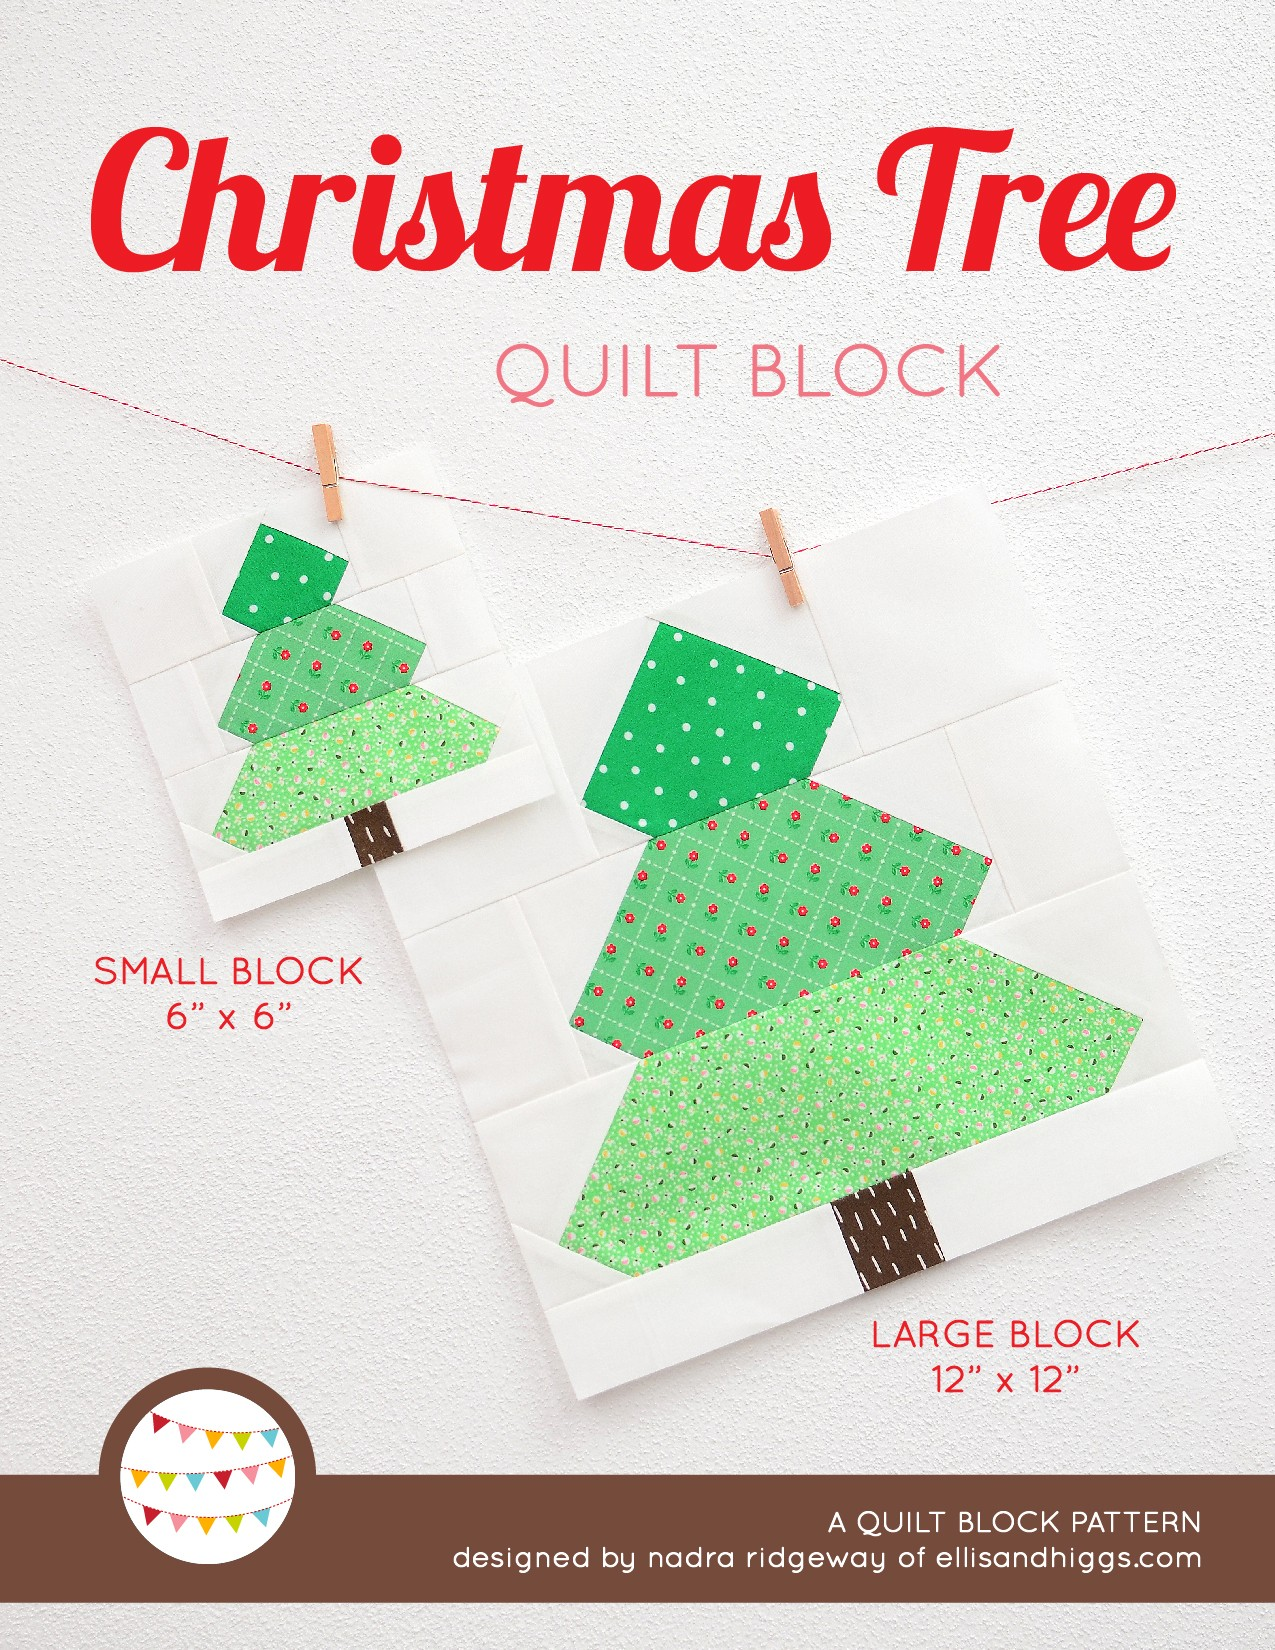 Christmas Tree quilt block in two sizes hanging on a wall - Christmas quilt pattern